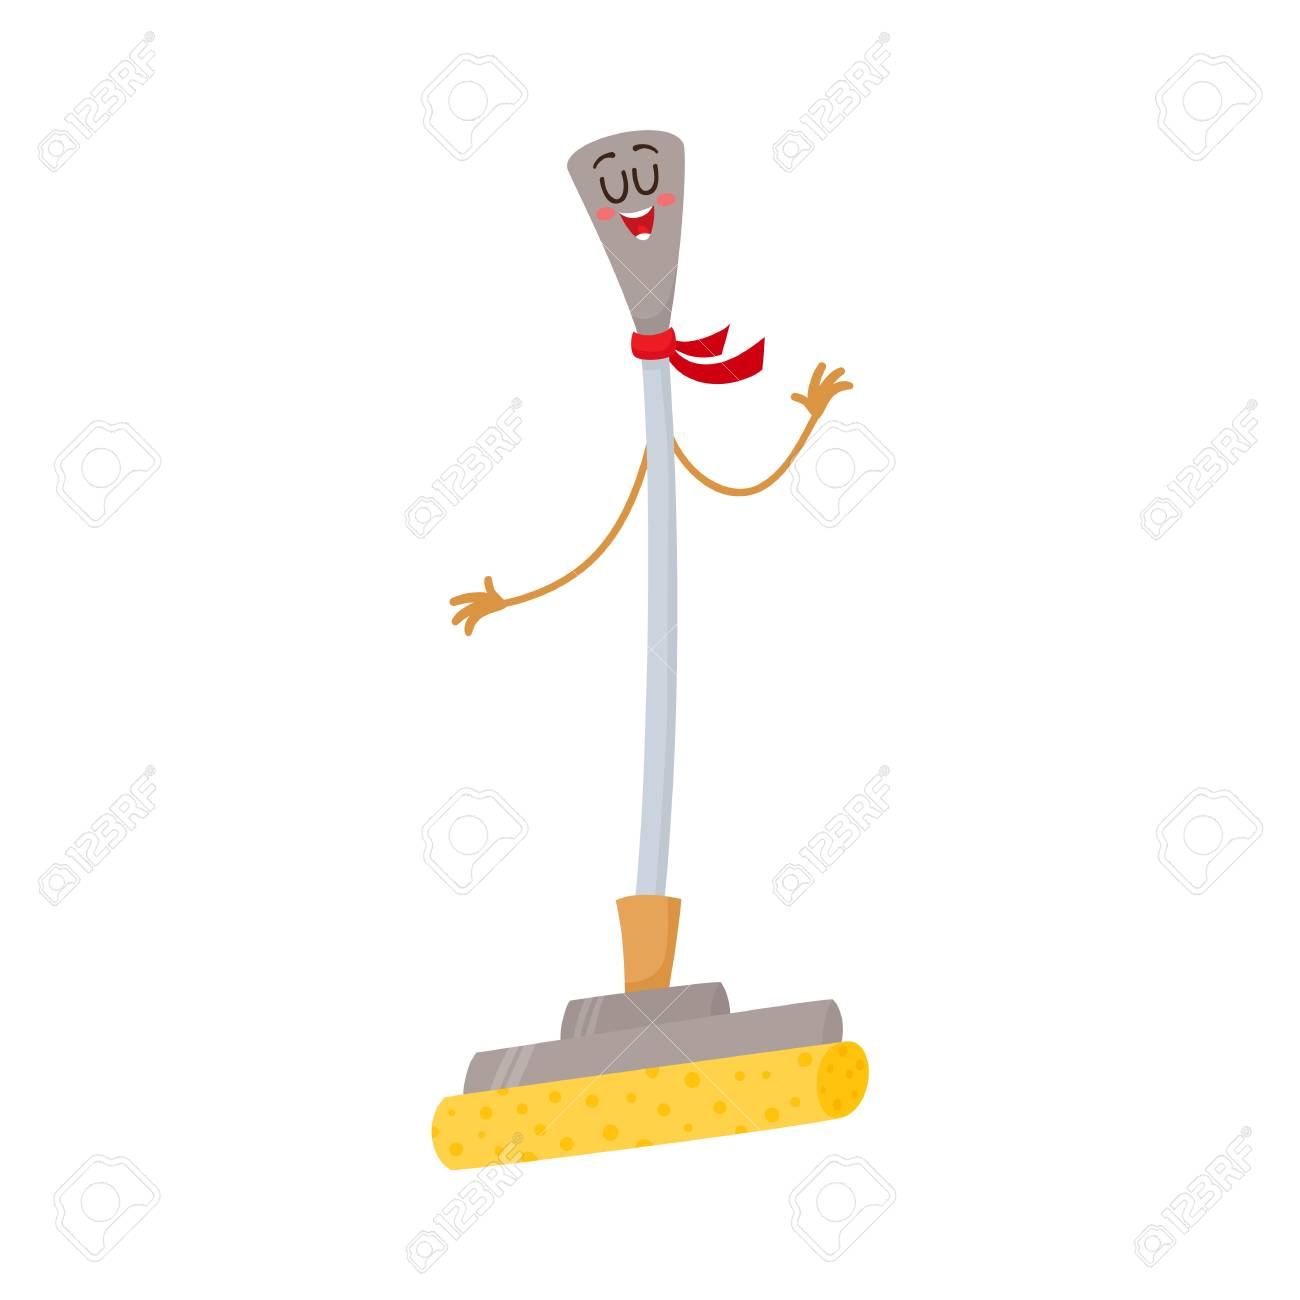 Funny sponge mop character with smiling human face cartoon vector funny sponge mop character with smiling human face cartoon vector illustration isolated on white background pooptronica Image collections